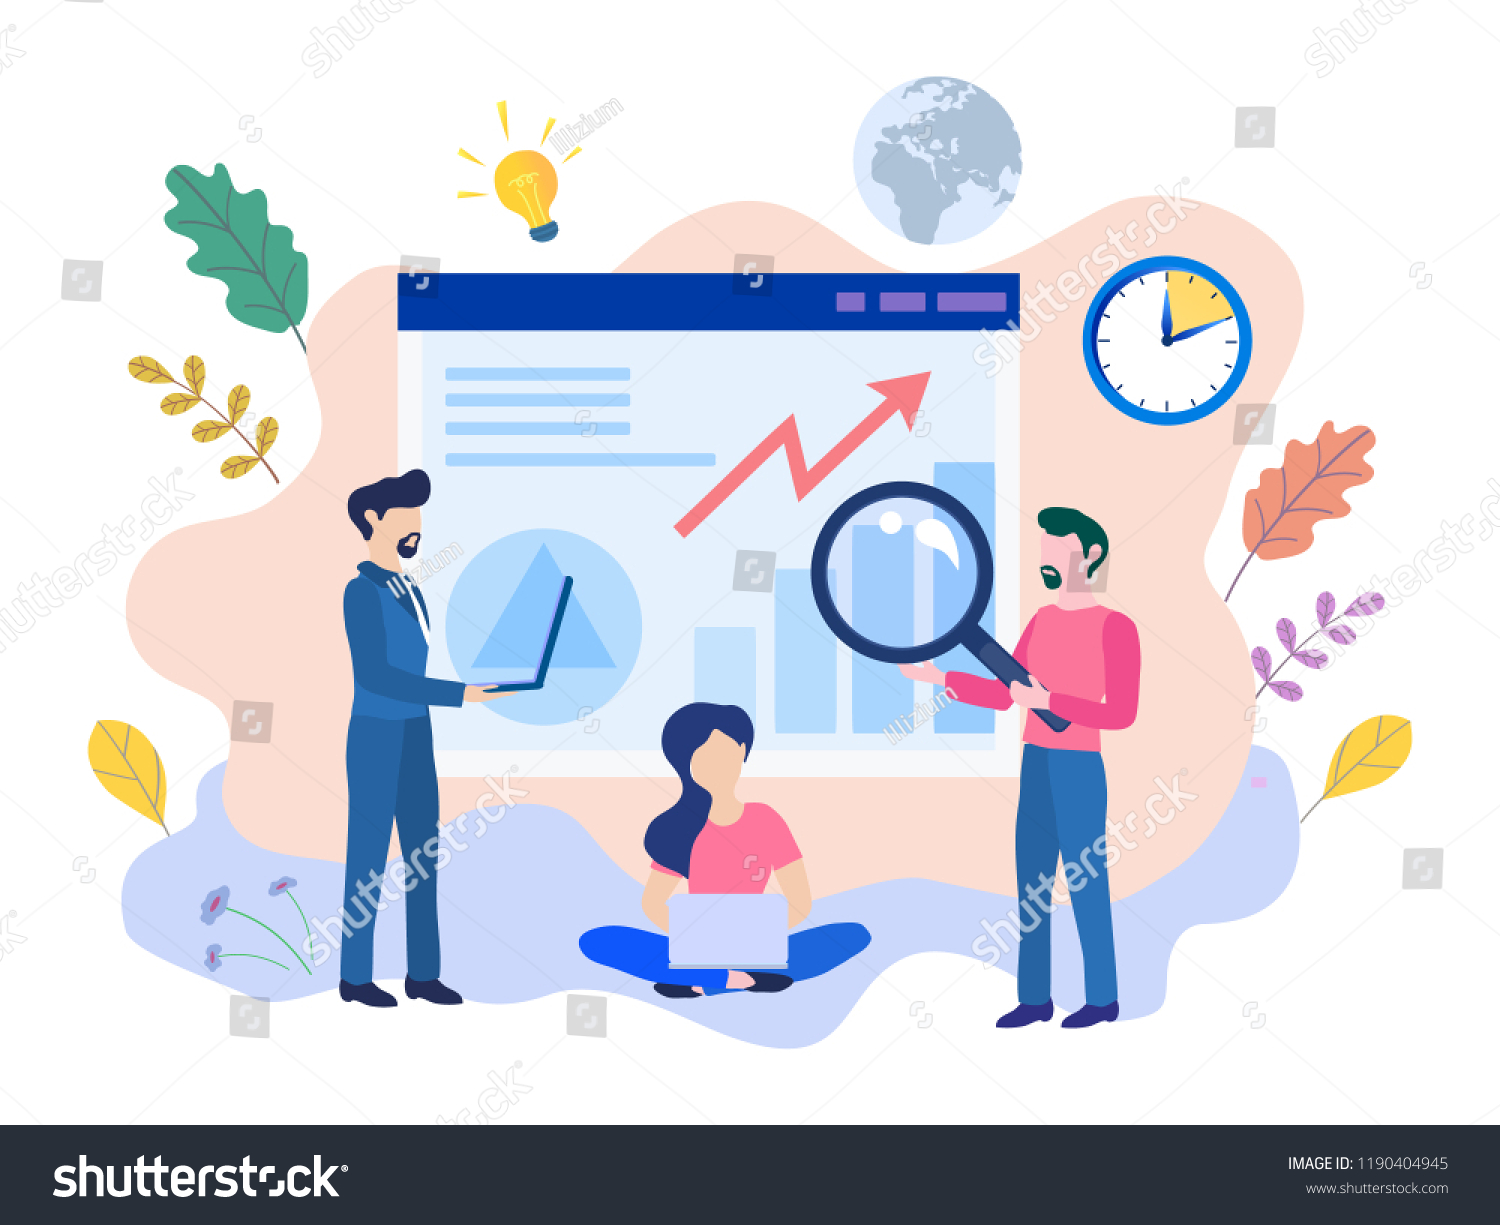 Concept Ux User Experience Development Design Stock Vector Royalty Free 1190404945